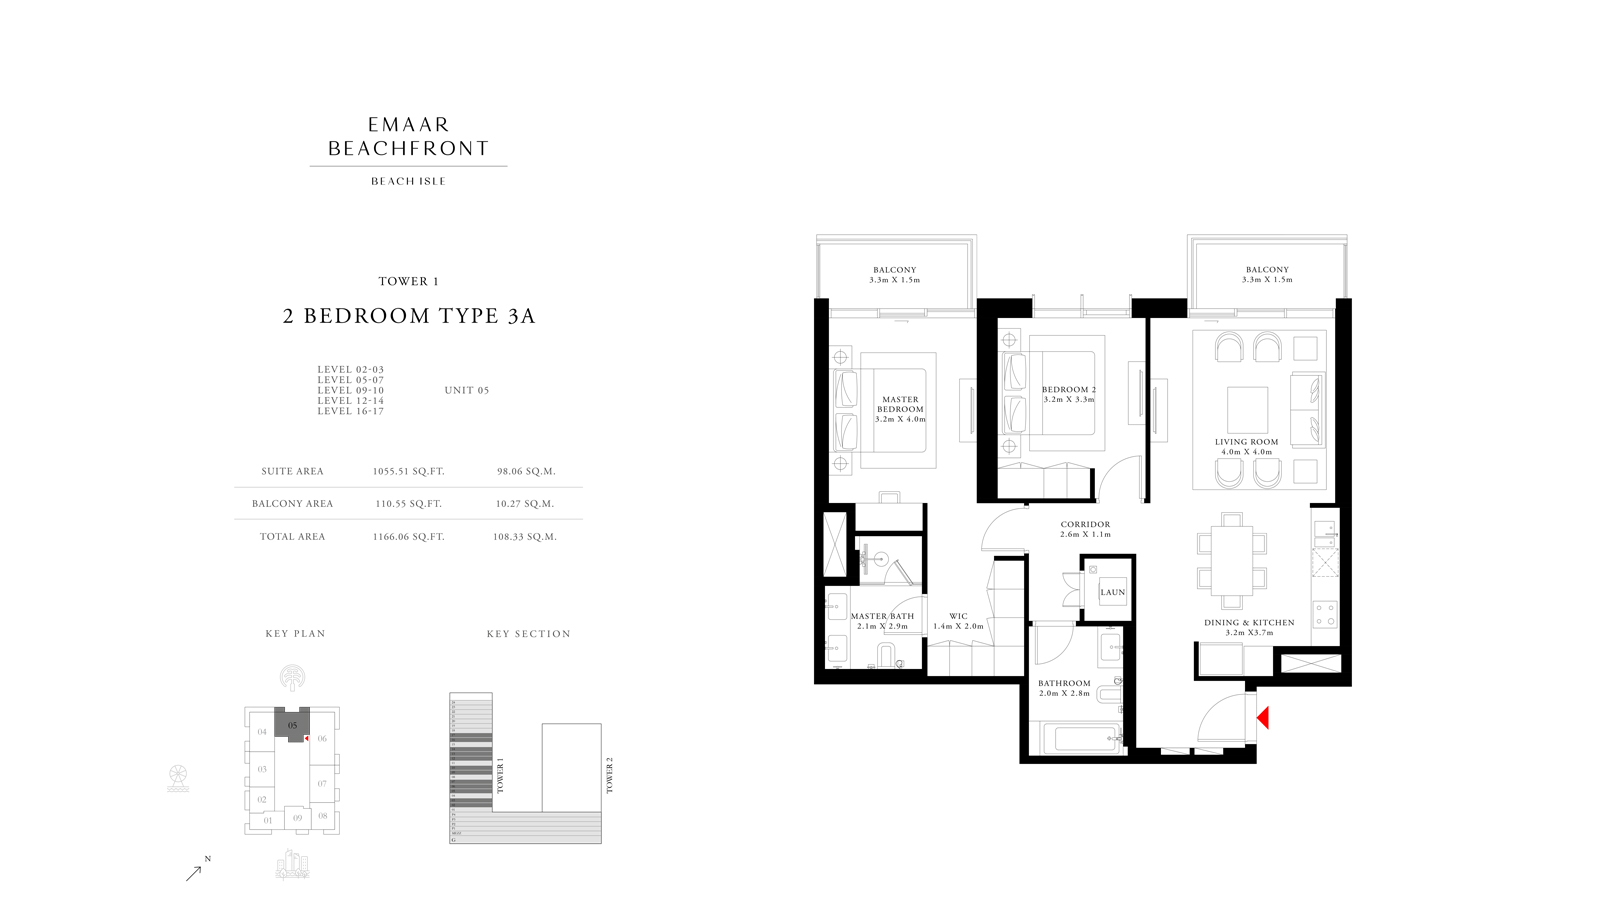 2 Bedroom Type 3A Tower 1, Size 1166    sq. ft.